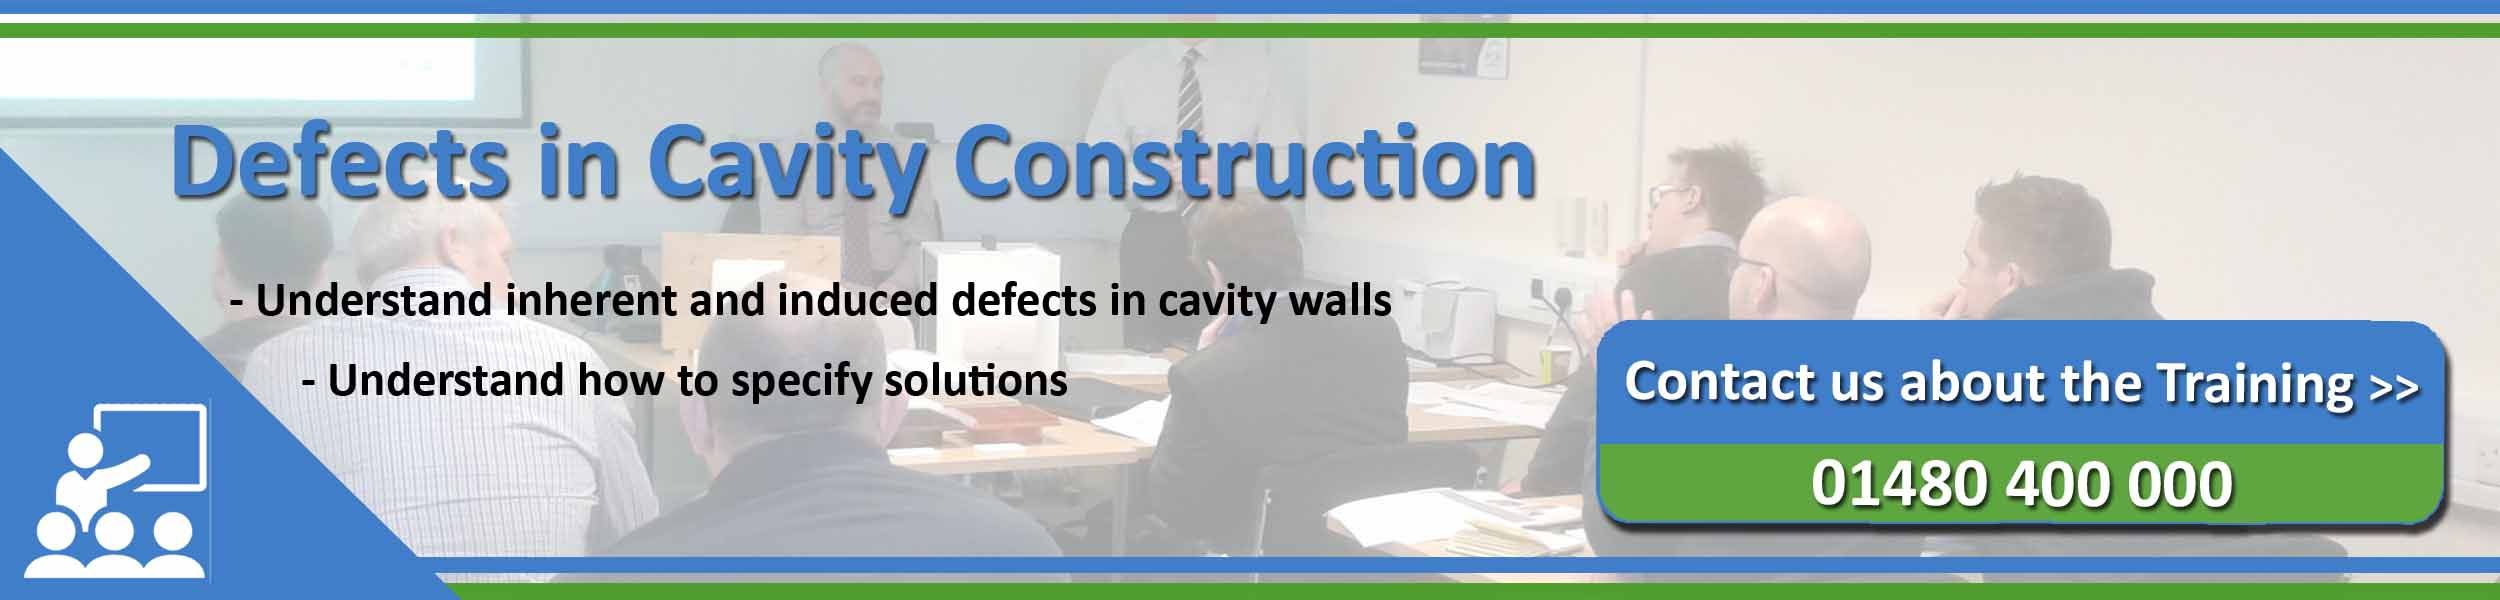 Defects in Cavity Construction - Property Care Association